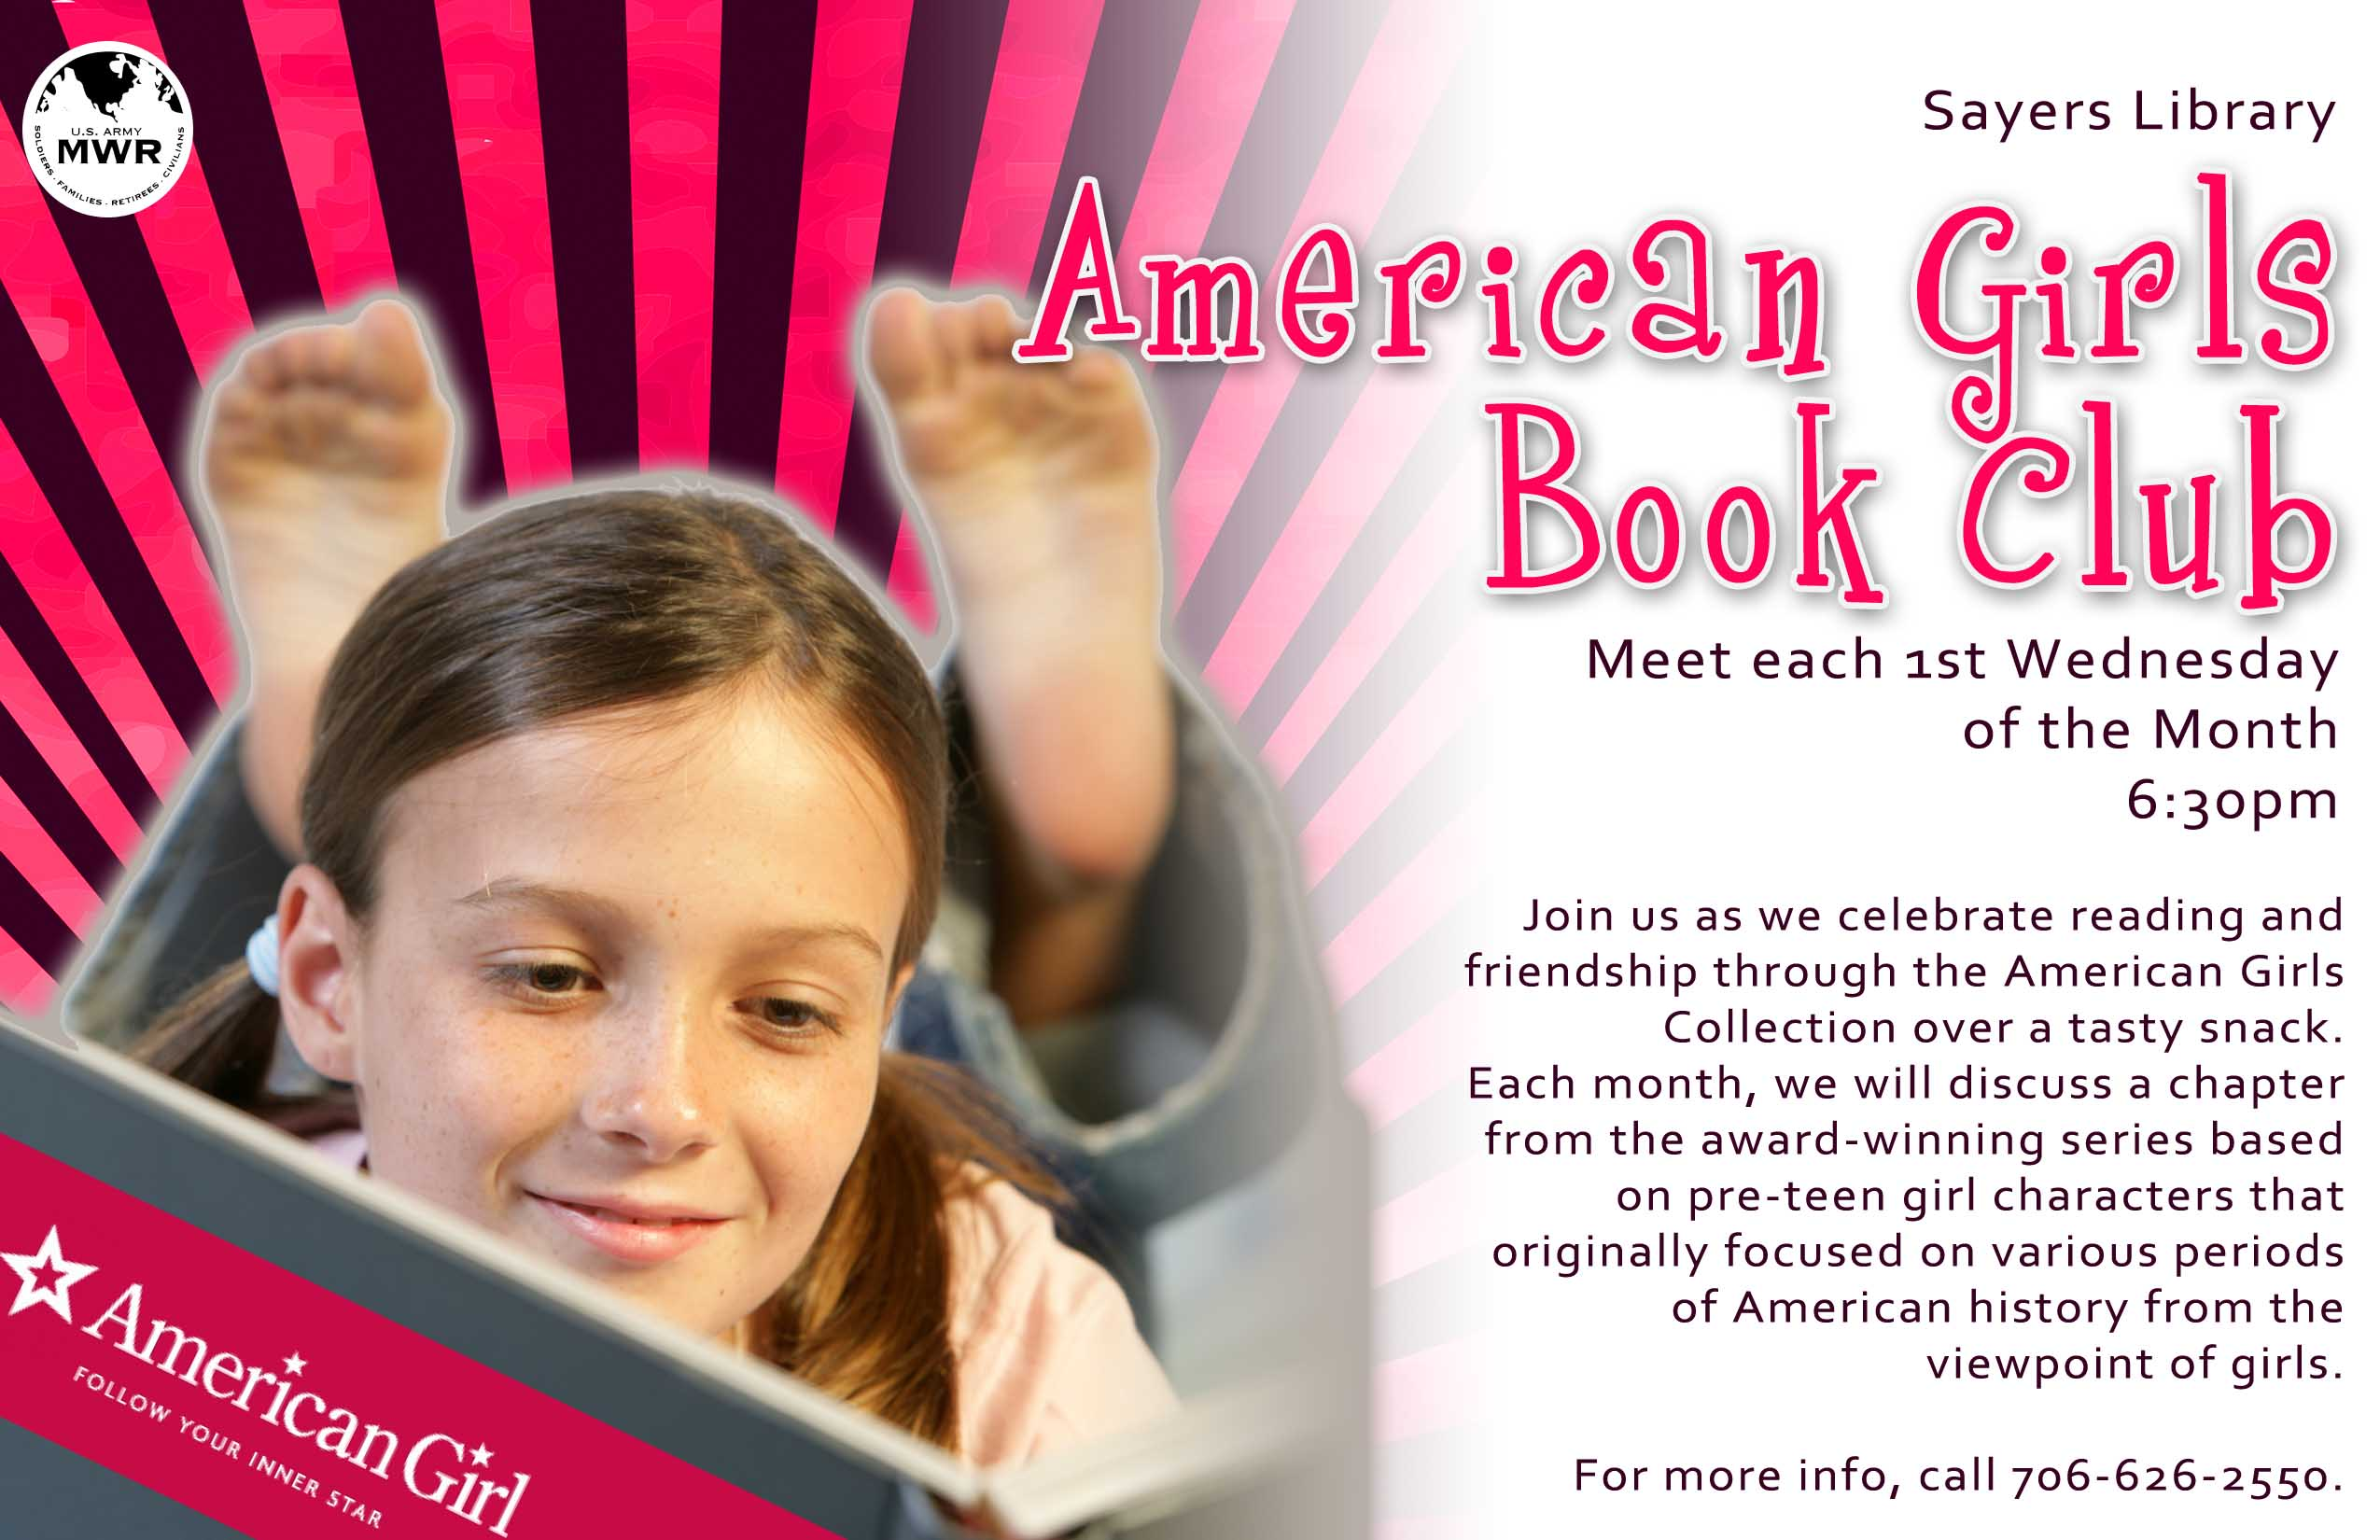 (Ft. Benning) American Girls Book Club at Sayers Library